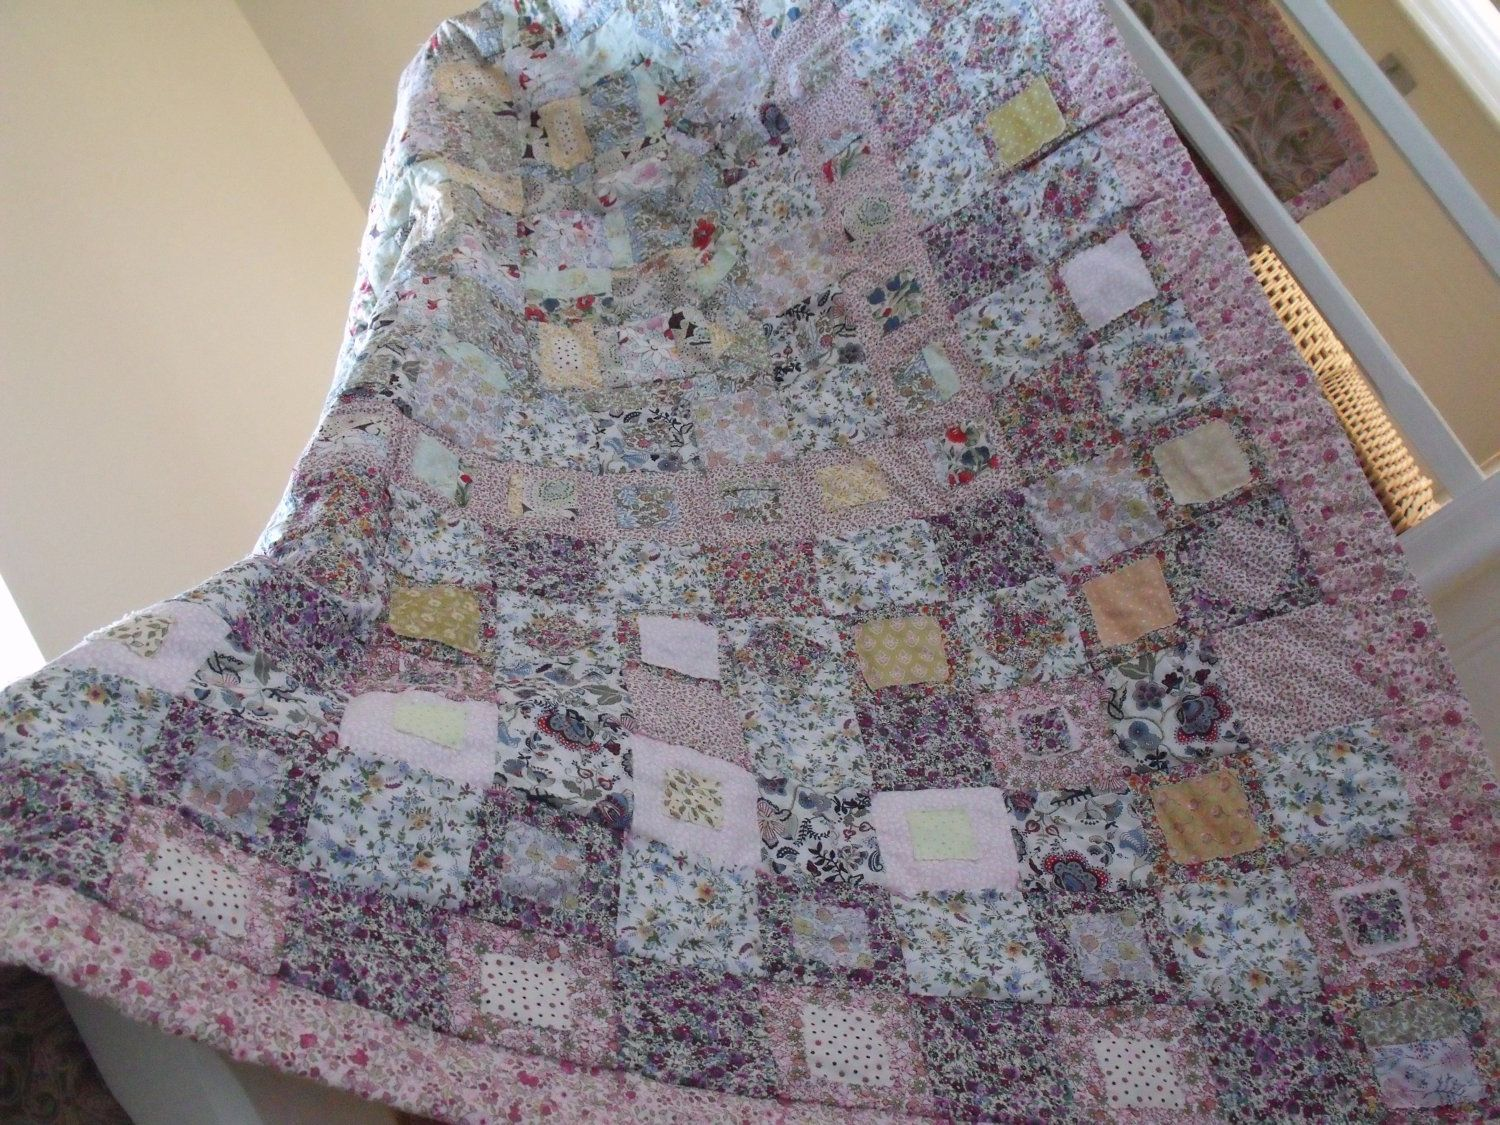 patchwork quilt cottage style shabby chic style quilt handmade ... : patchwork quilt handmade - Adamdwight.com